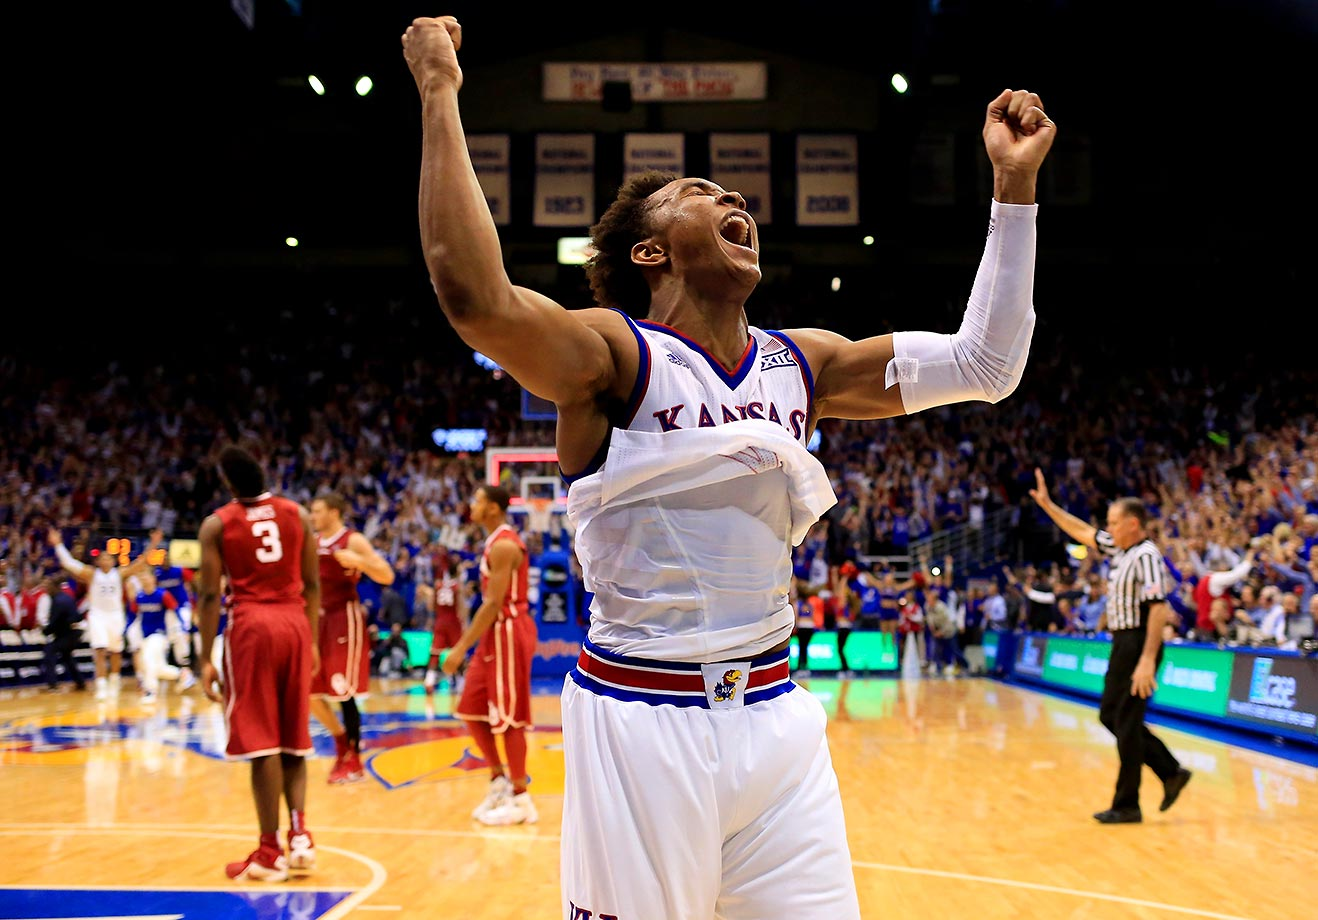 Devonte' Graham of Kansas celebrates after his team won a three-overtime thriller against Oklahoma.